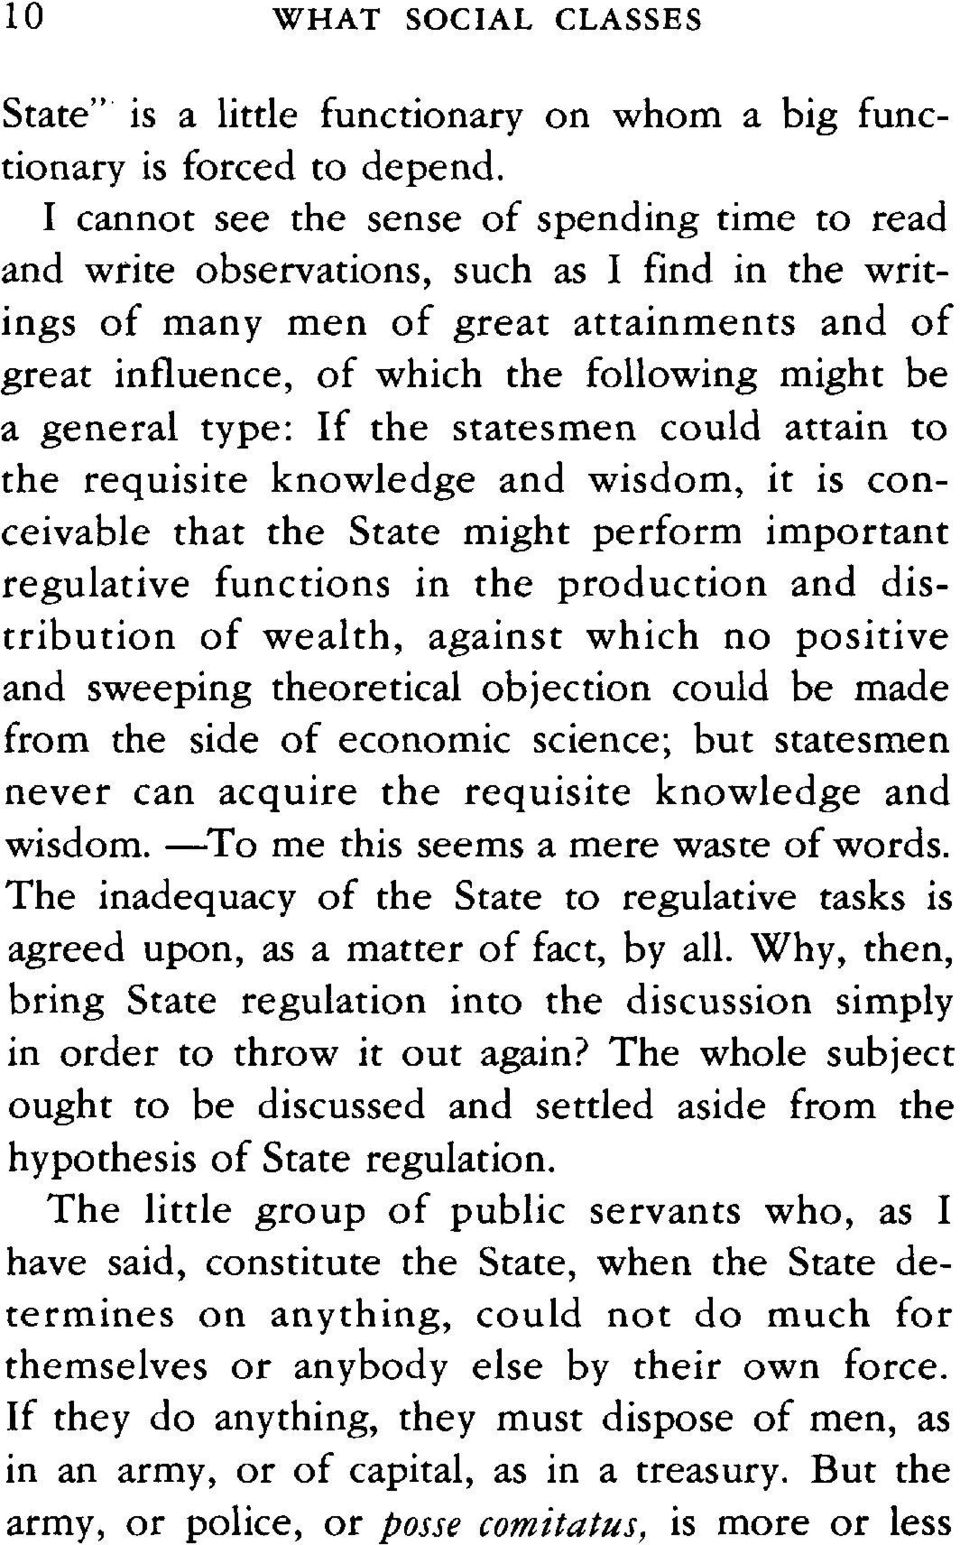 general type: If the statesmen could attain to the requisite knowledge and wisdom, it is conceivable that the State might perform important regulative functions in the production and distribution of